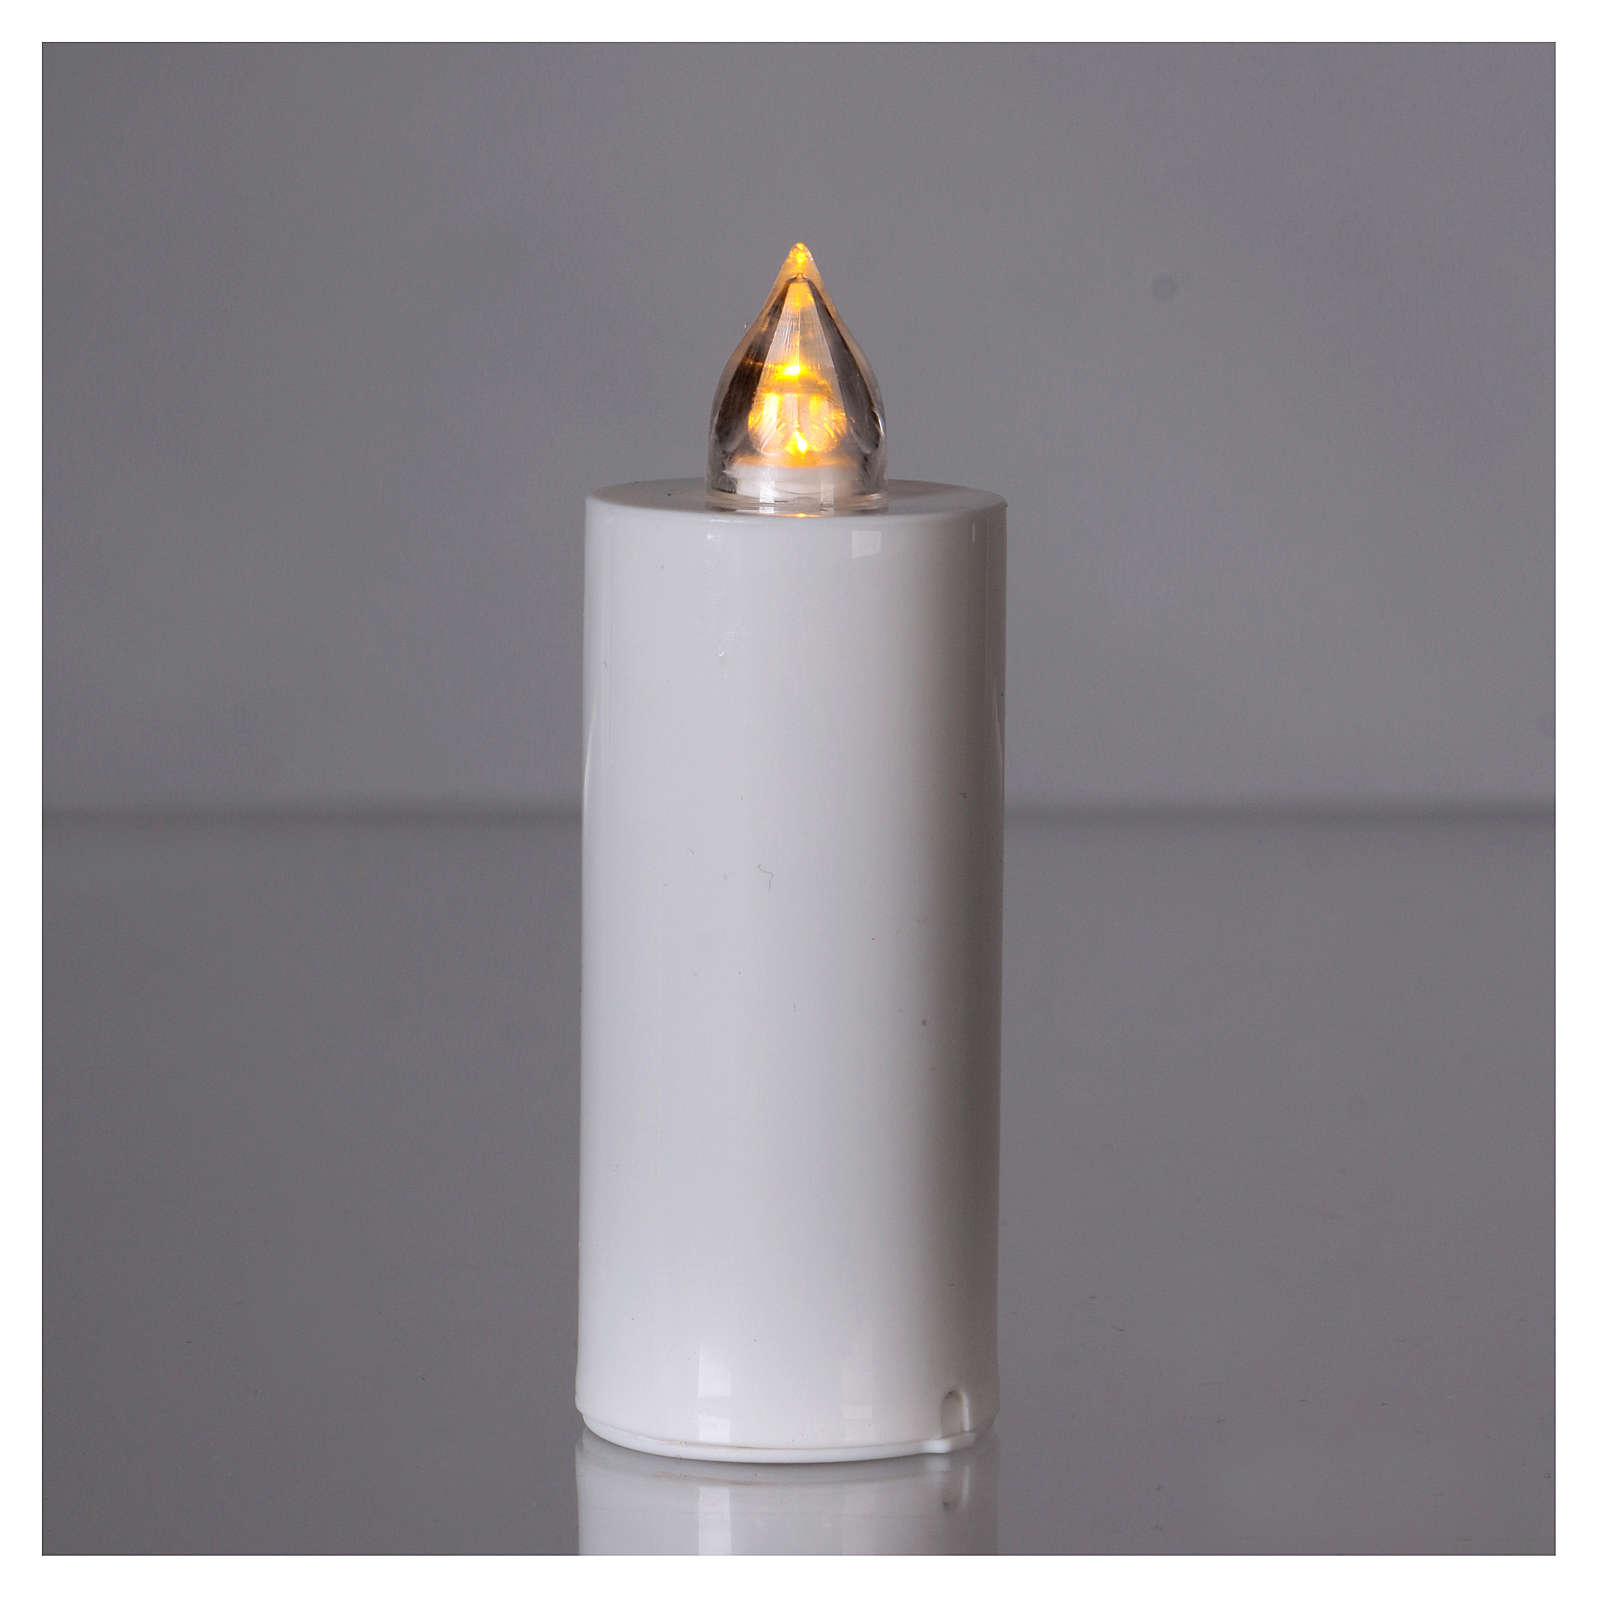 Lumada electric candle with yellow light and white body 3